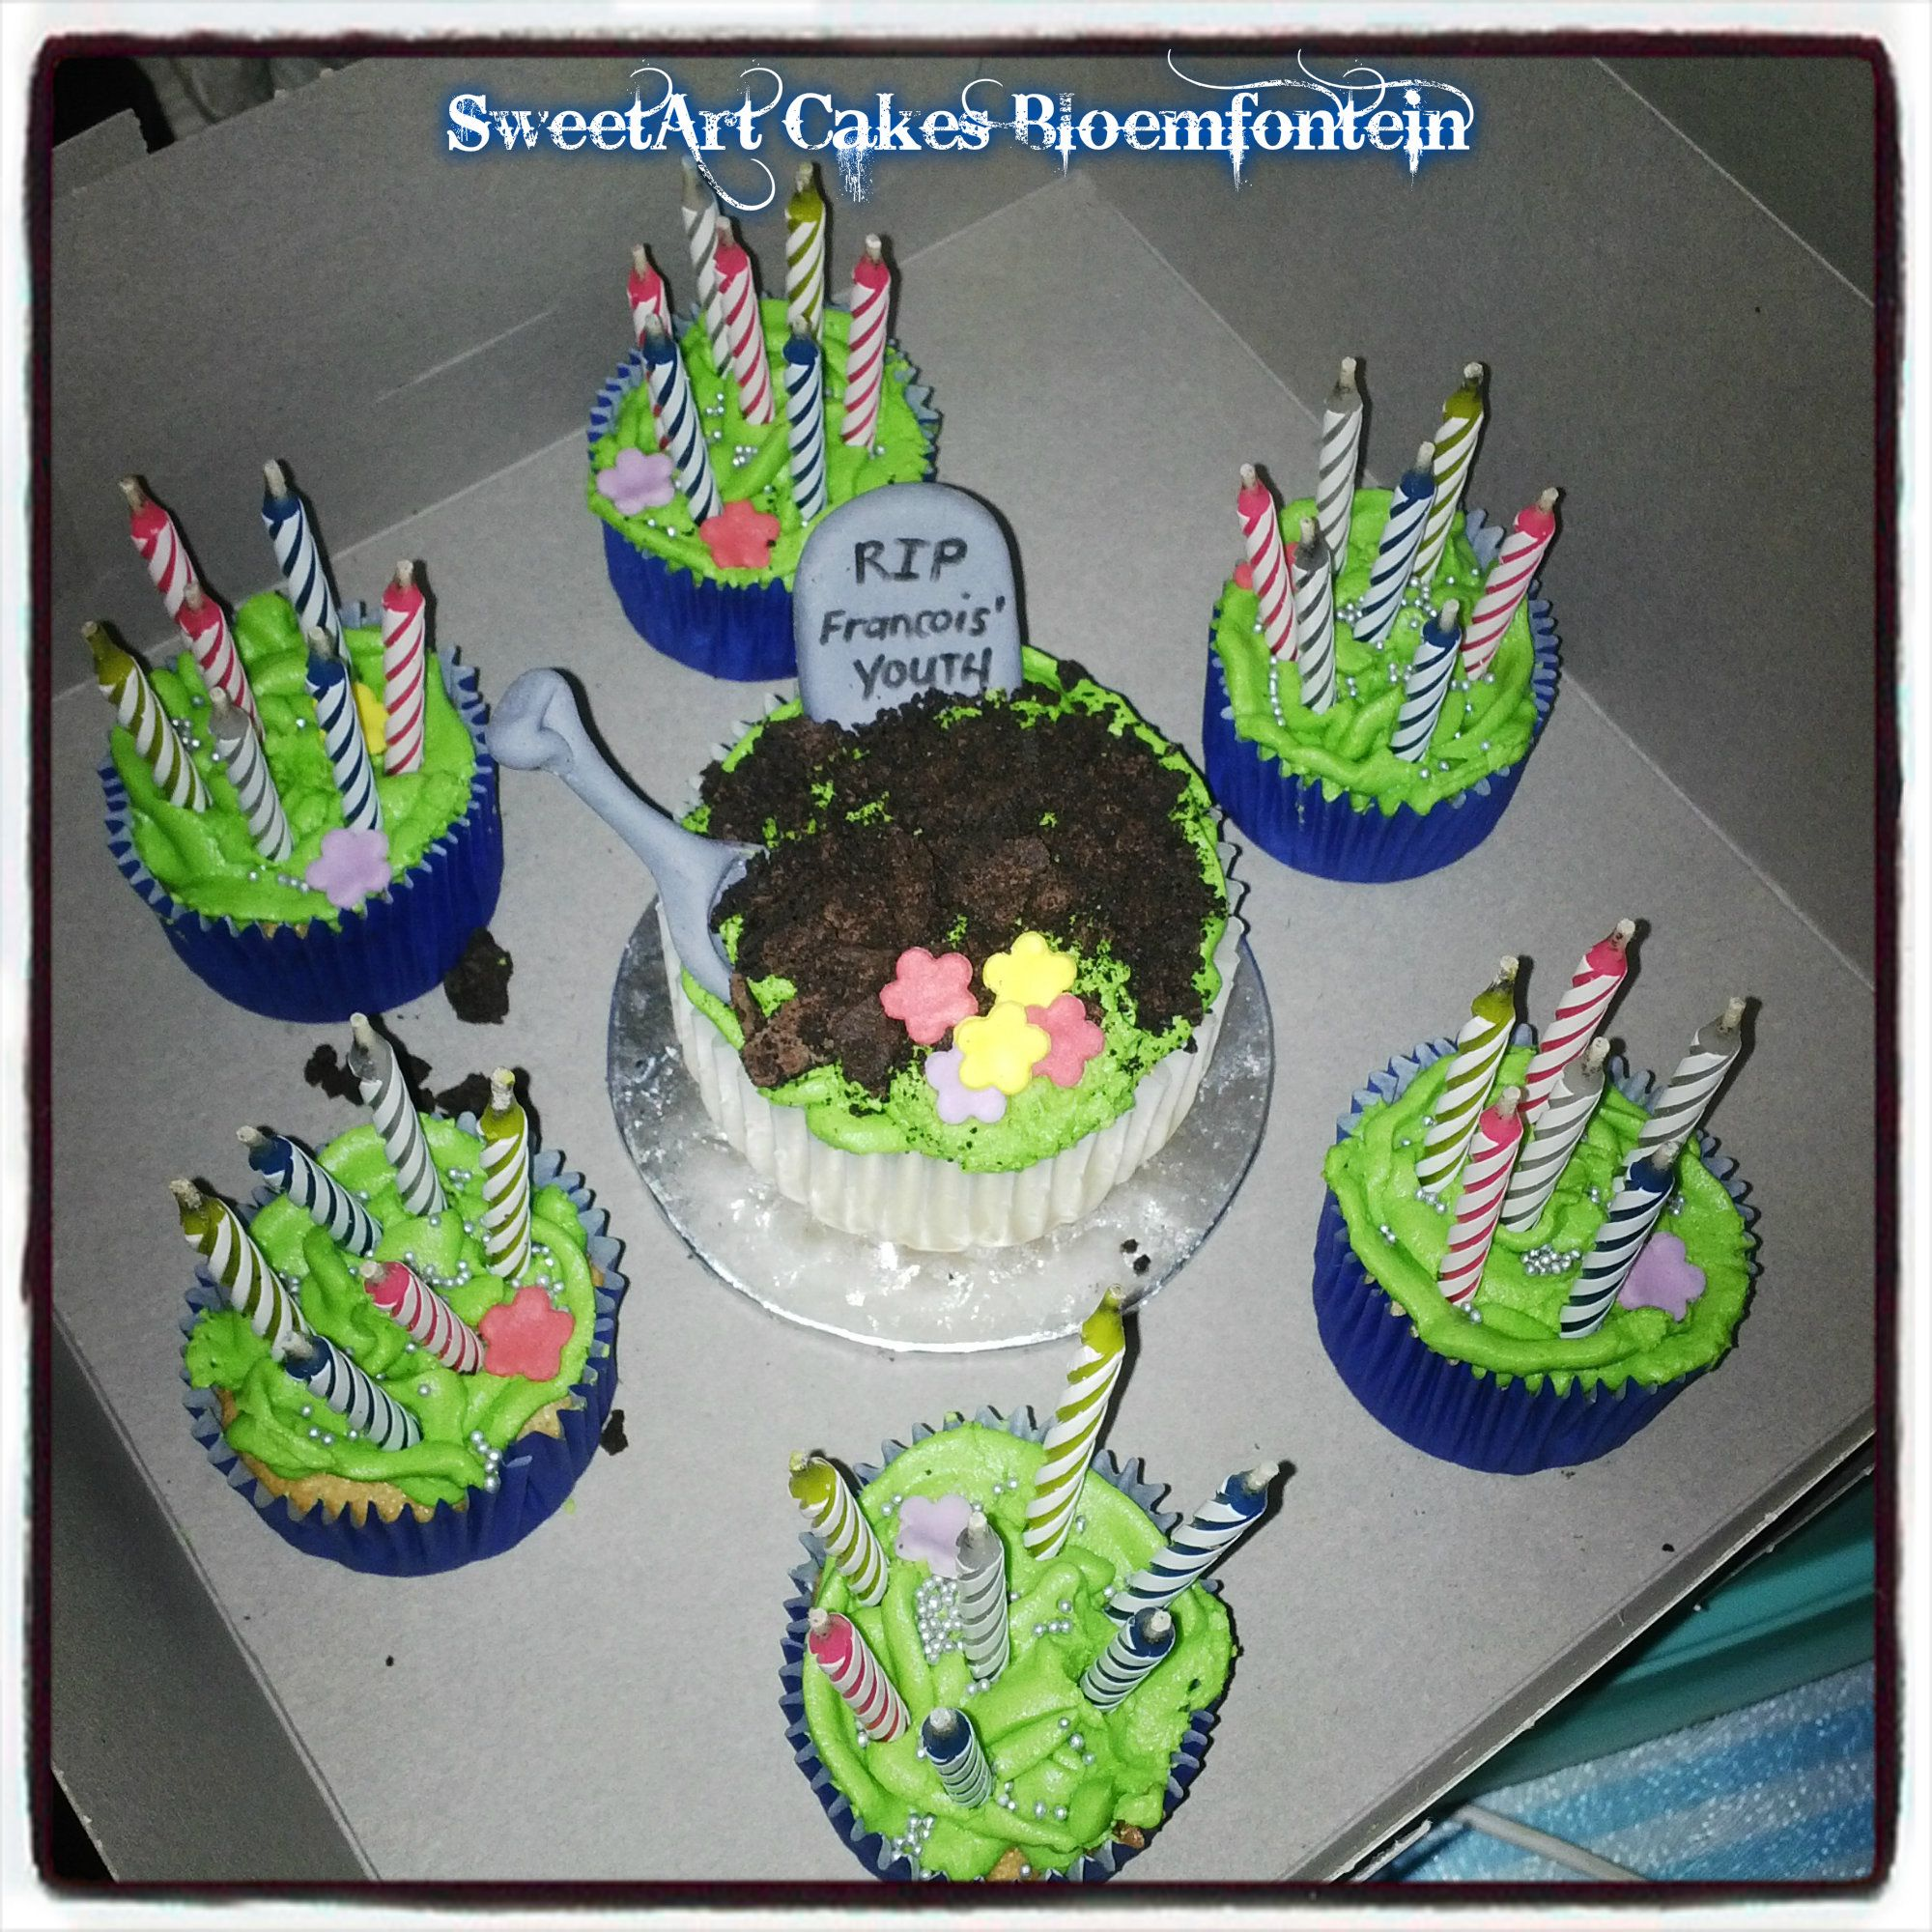 Rip youth cupcakes beautiful affordable themed cakes cupcakes and